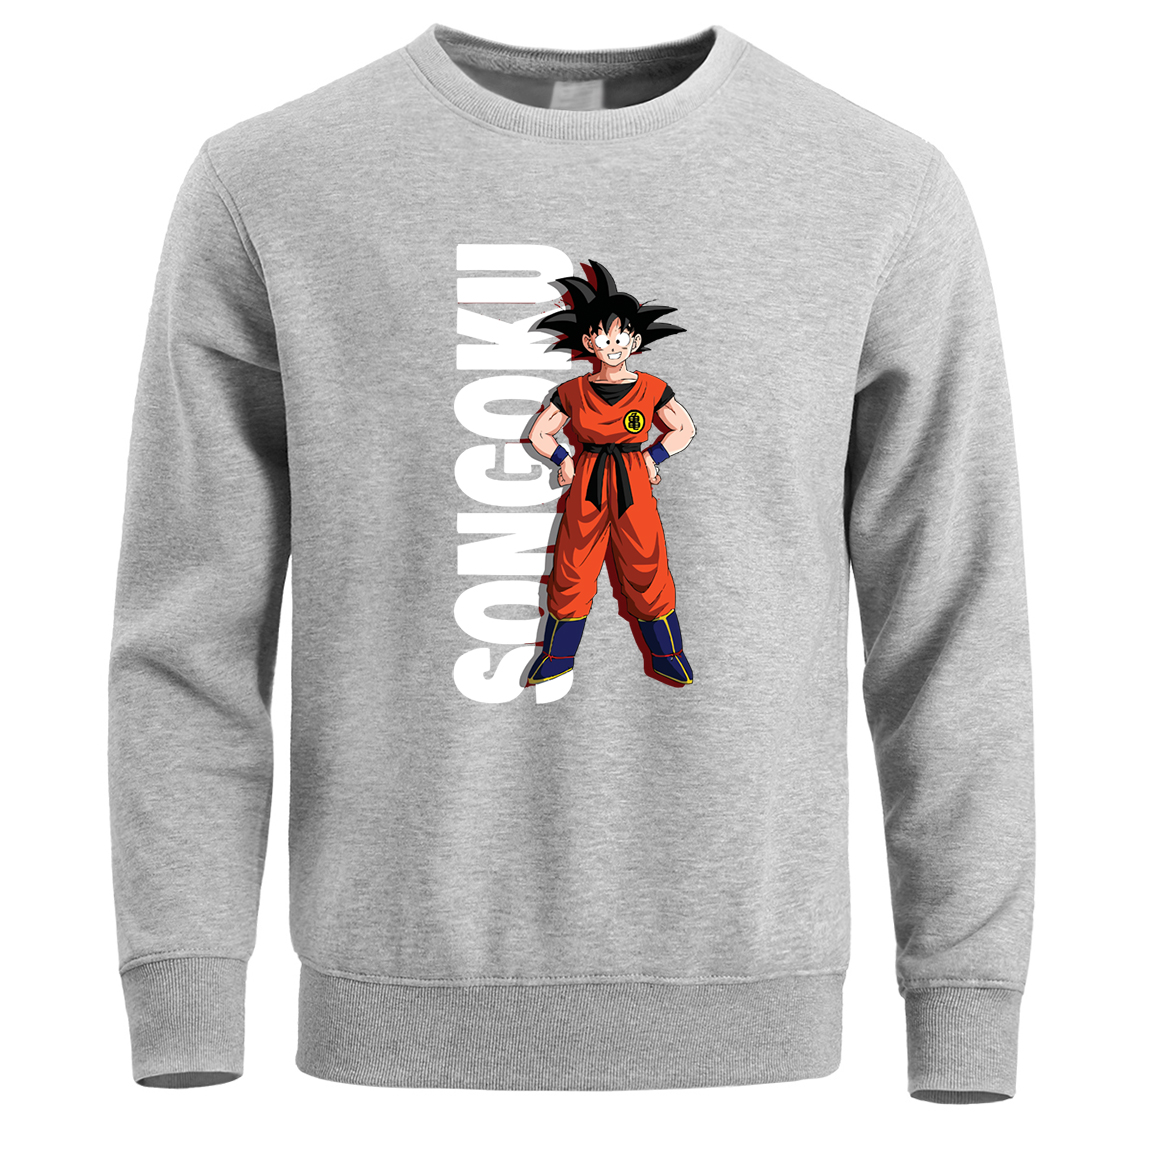 Dragon Ball Z Super Sai Yan Men Hoodies Sweatshirts Crewneck Hoodie Sweatshirt Pullover Winter Fleece Warm Anime Black Hoody